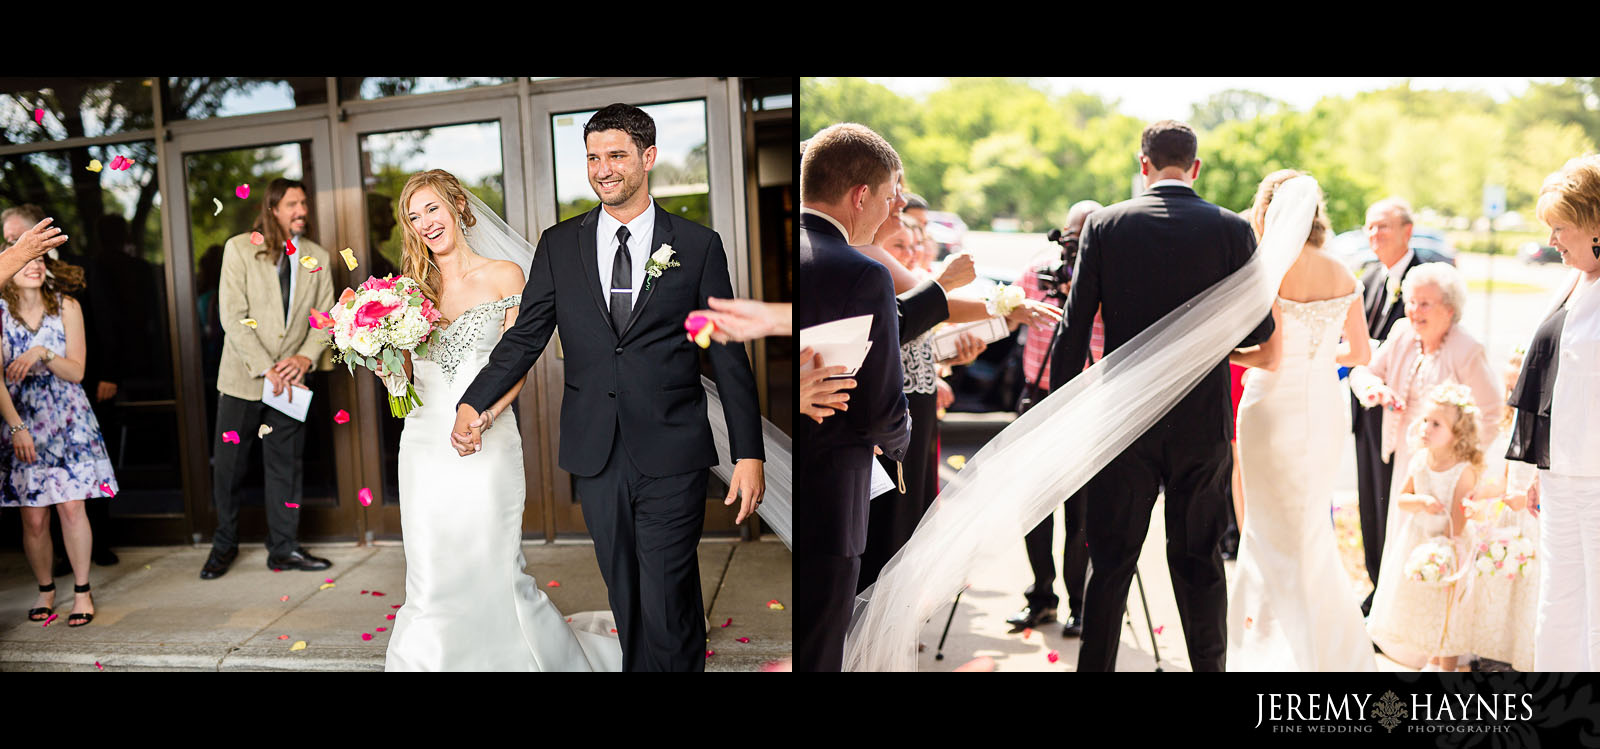 wedding-exit-indianapolis.jpg